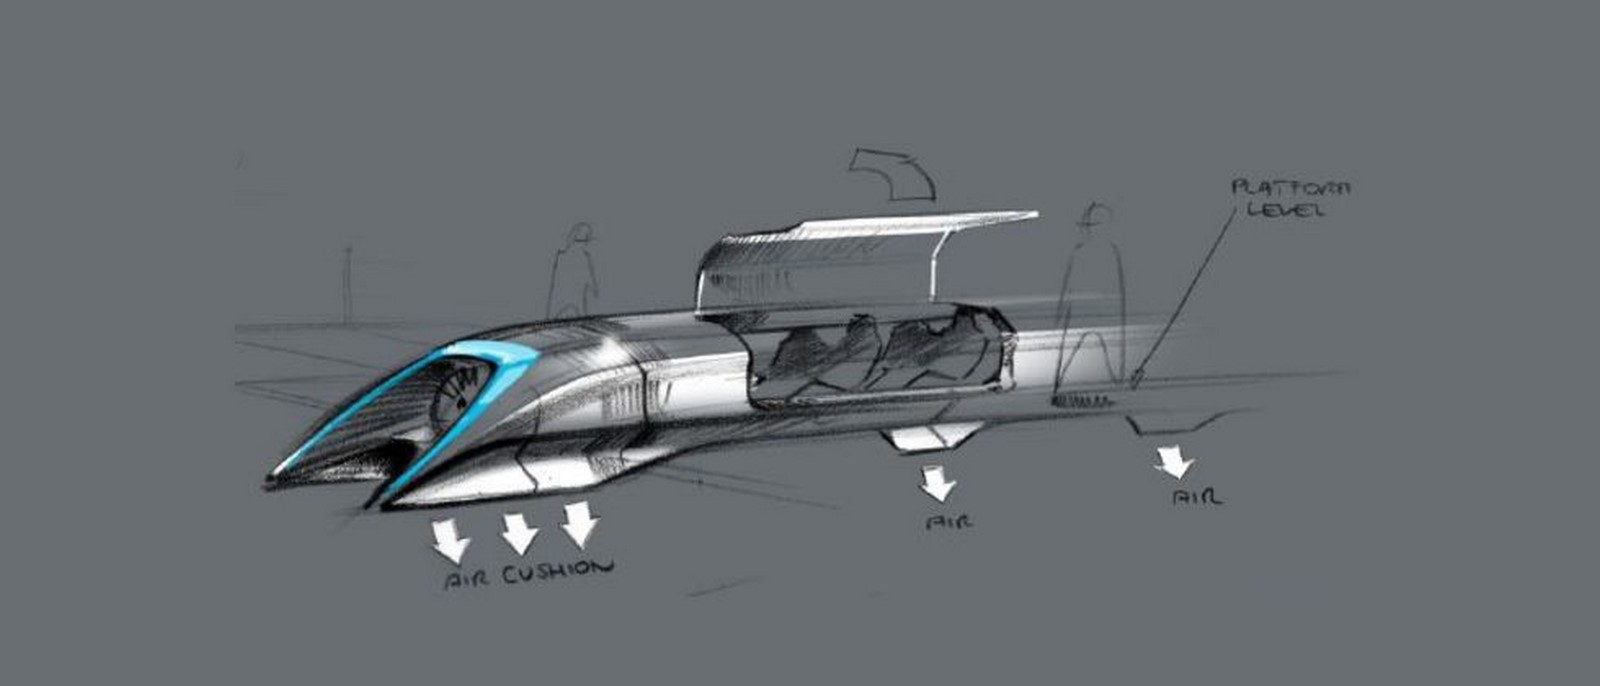 10 Transporation design from the future - Sheet4